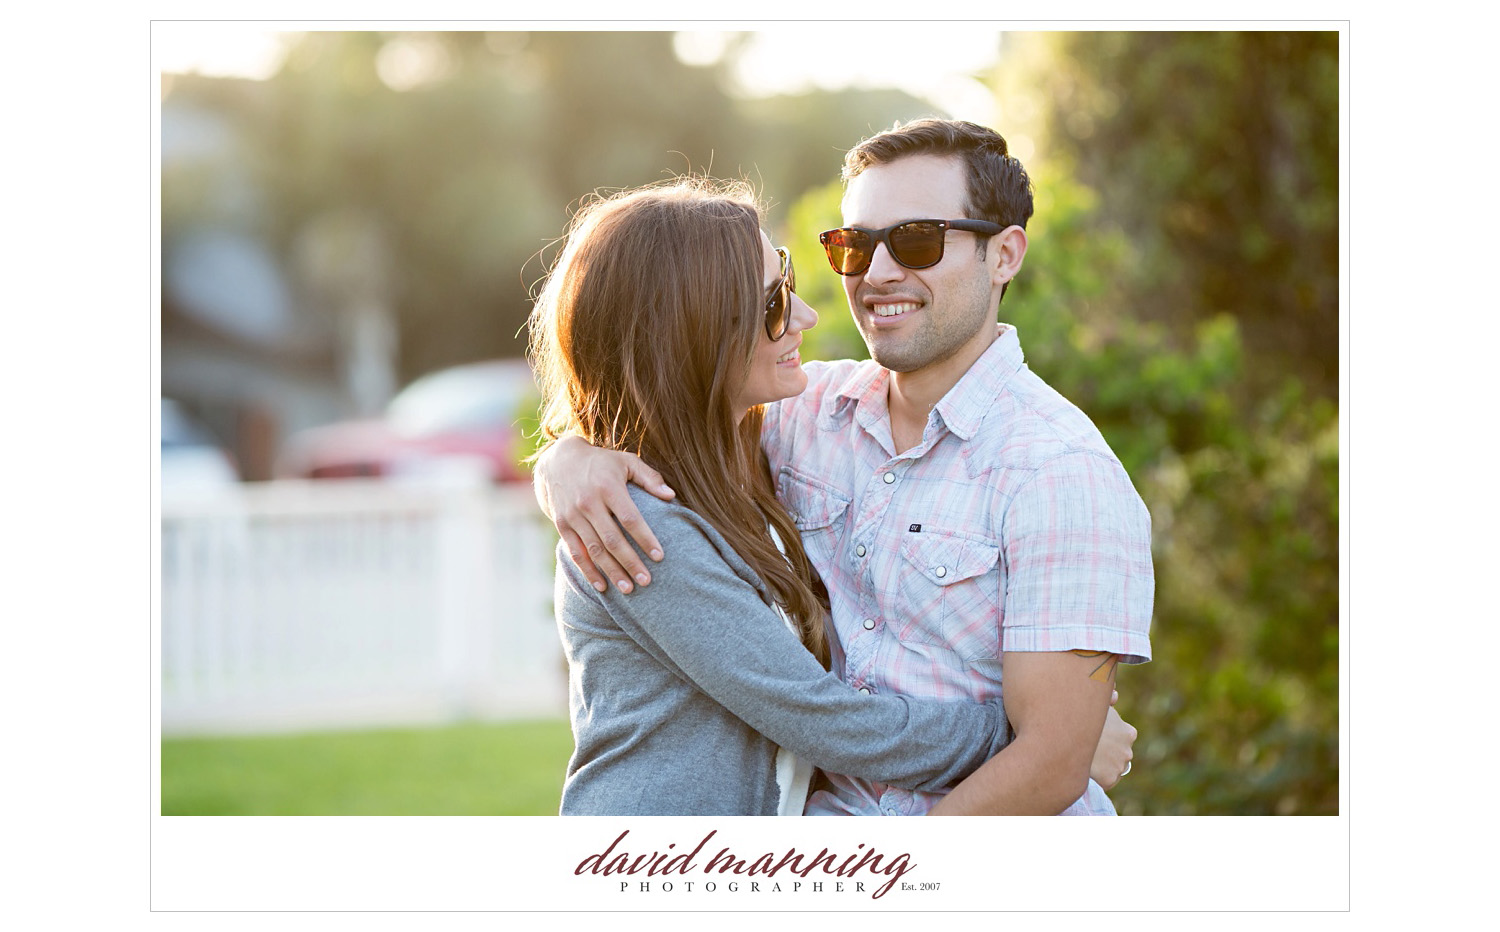 Encinitas-Engagement-Photos-San-Diego-David-Manning_0012.jpg